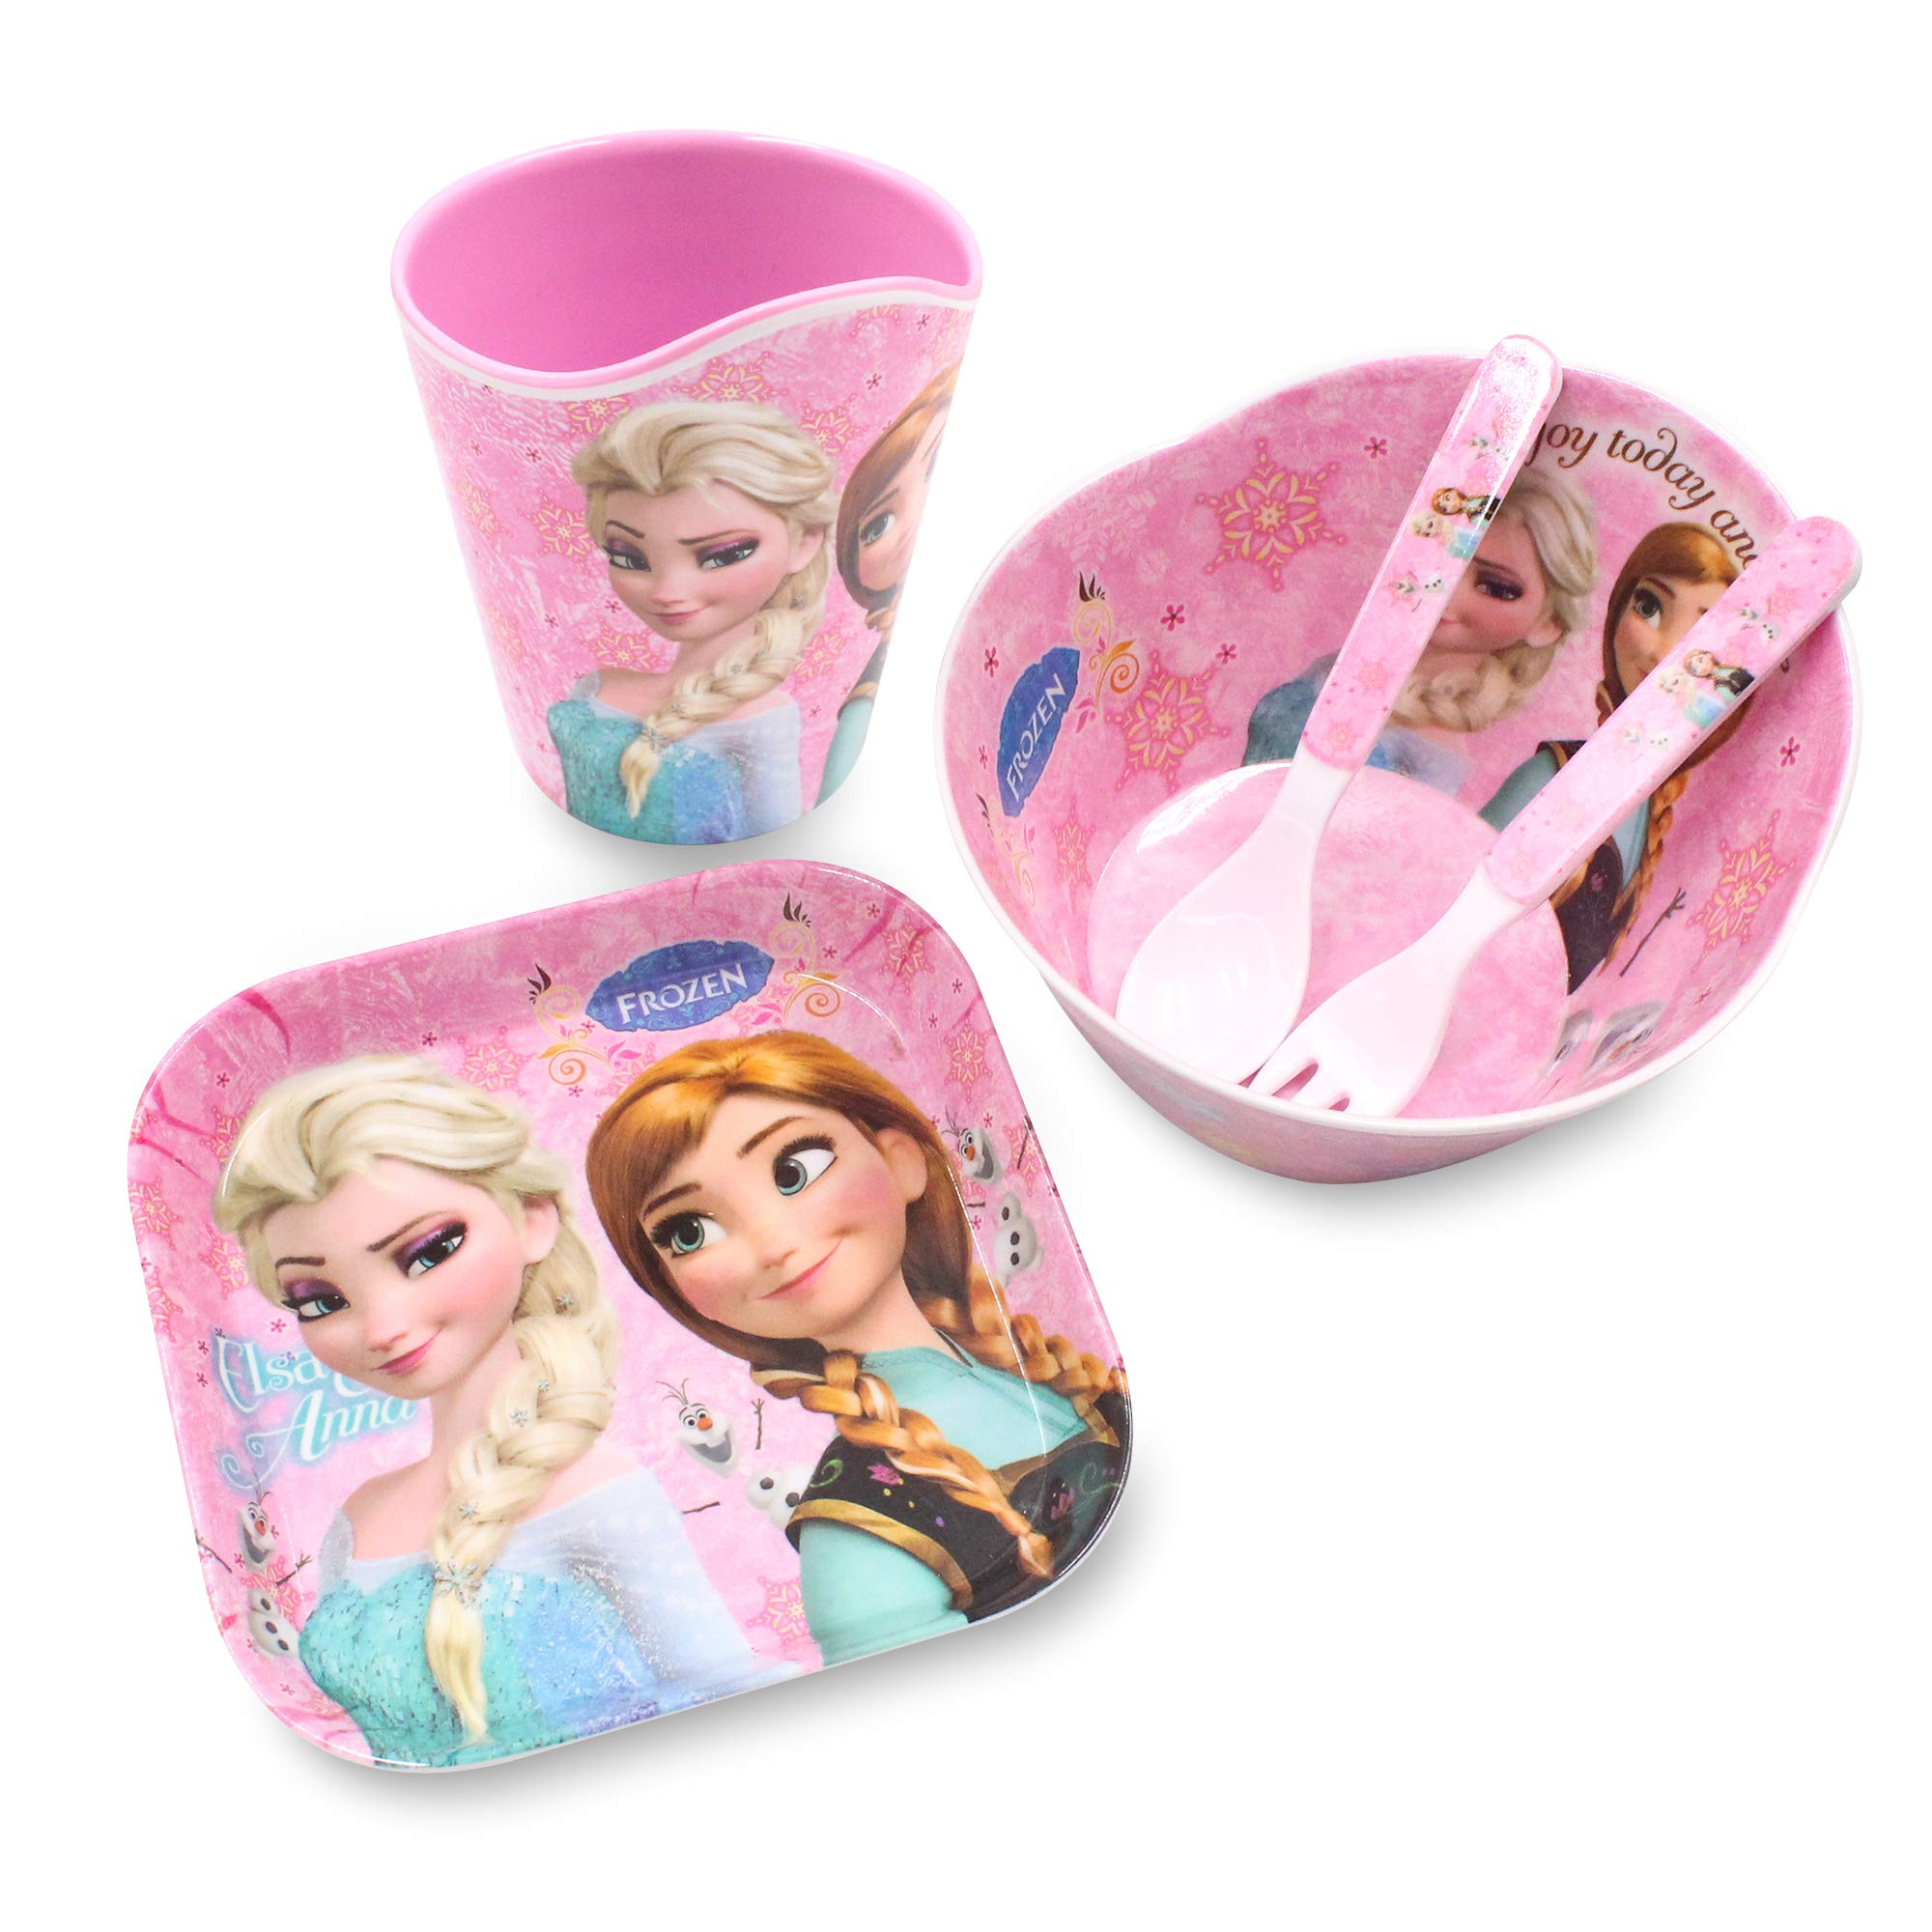 Finex Frozen Queen Elsa Princes Anna 5 Pcs Set Children Cartoon Durable Tableware Meal Dishes Mealtime Food Feeding Eating Set includes Dinner Serving Bowl Plate Cup with a Matching Spoon & Fork Kids